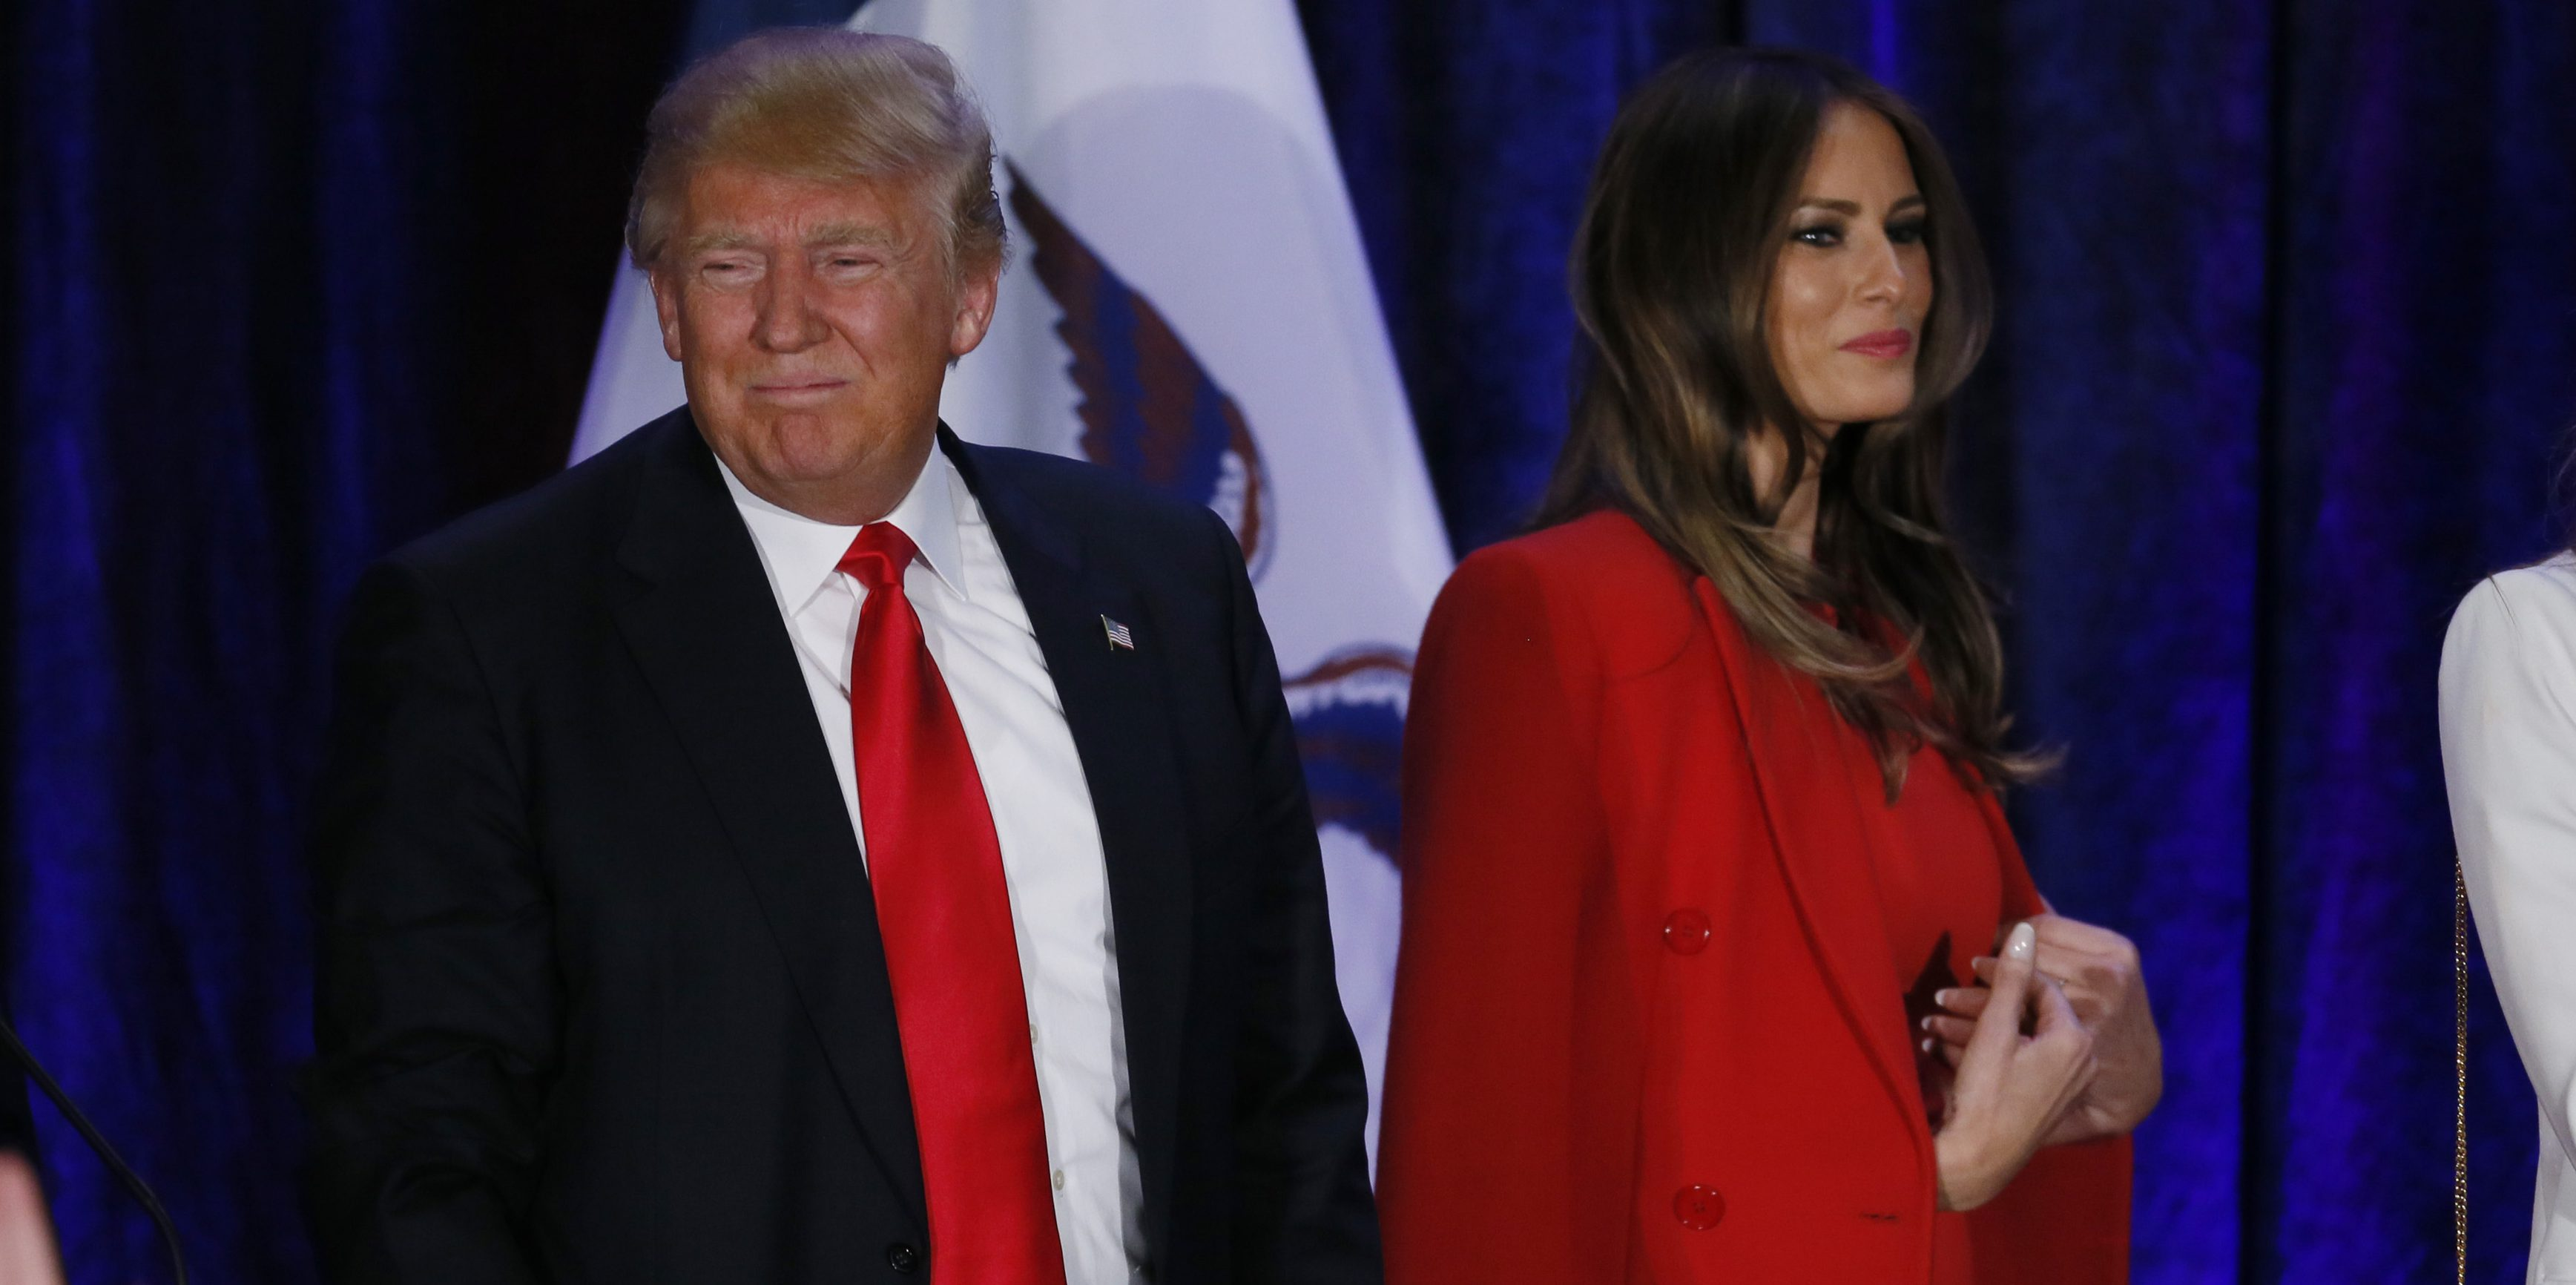 Republican U.S. presidential candidate Donald Trump and his wife Melania  leave the stage at his caucus